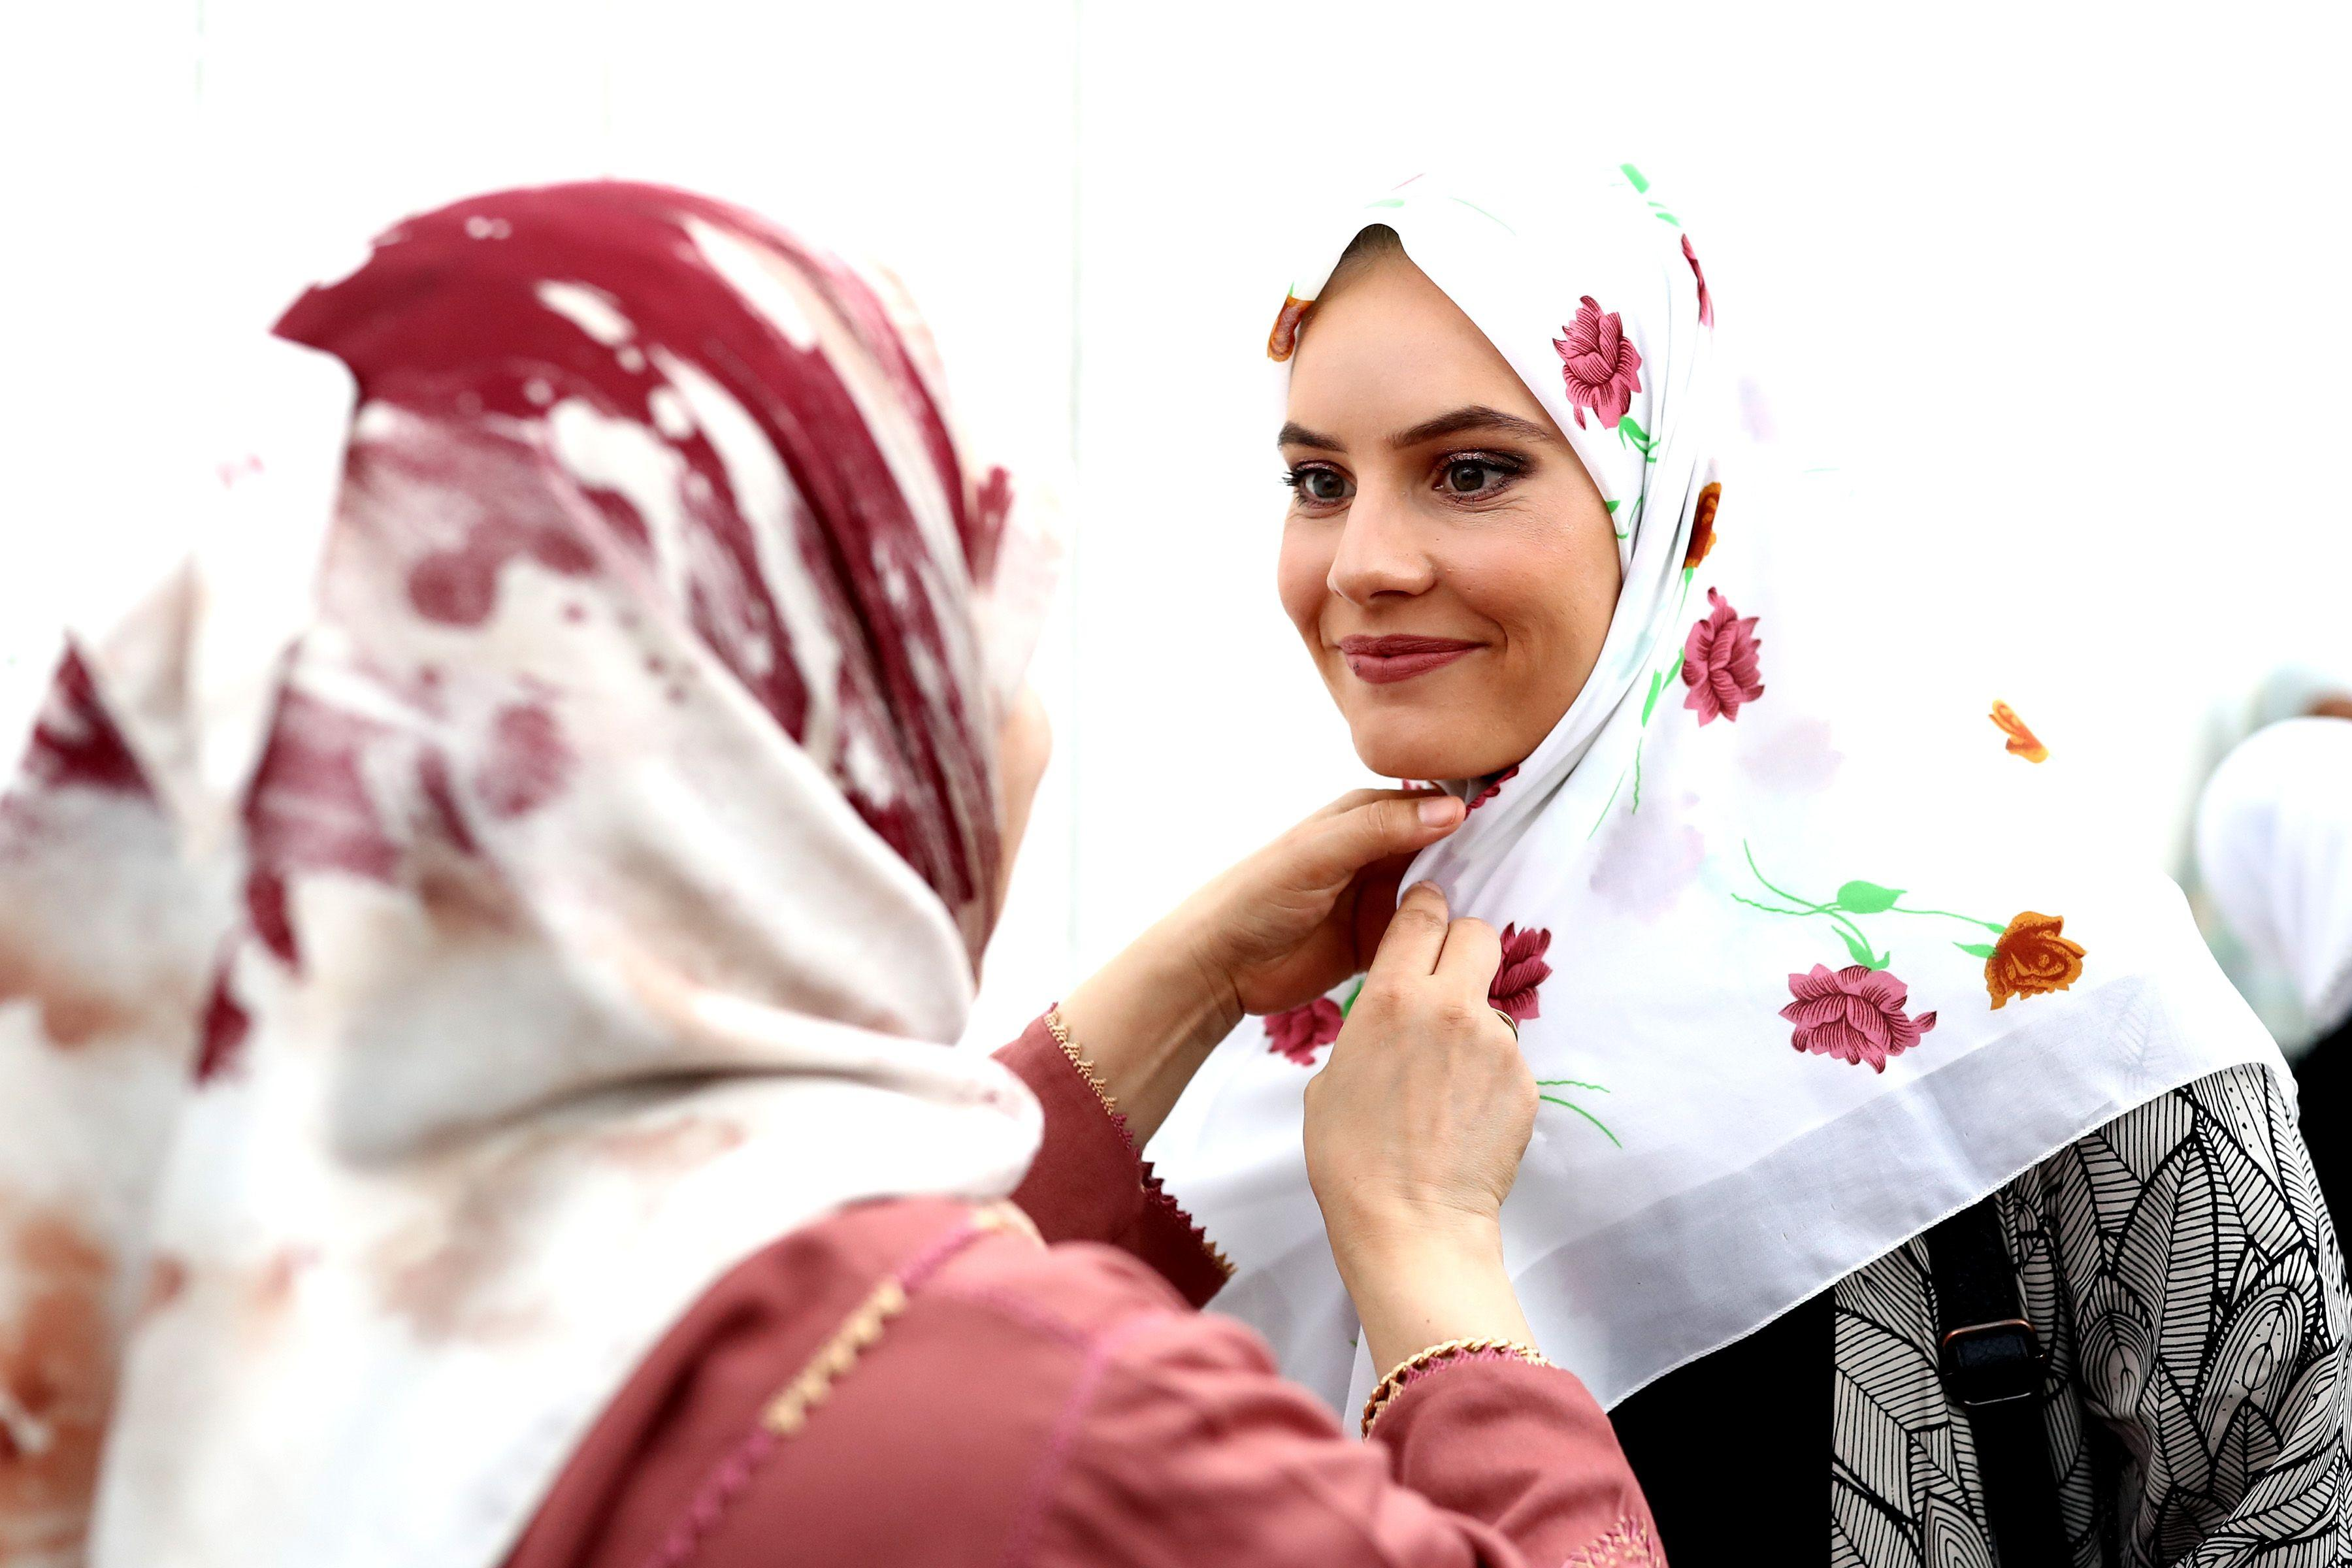 New Zealand women wear headscarves in solidarity with Muslims after Christchurch mosque shootings